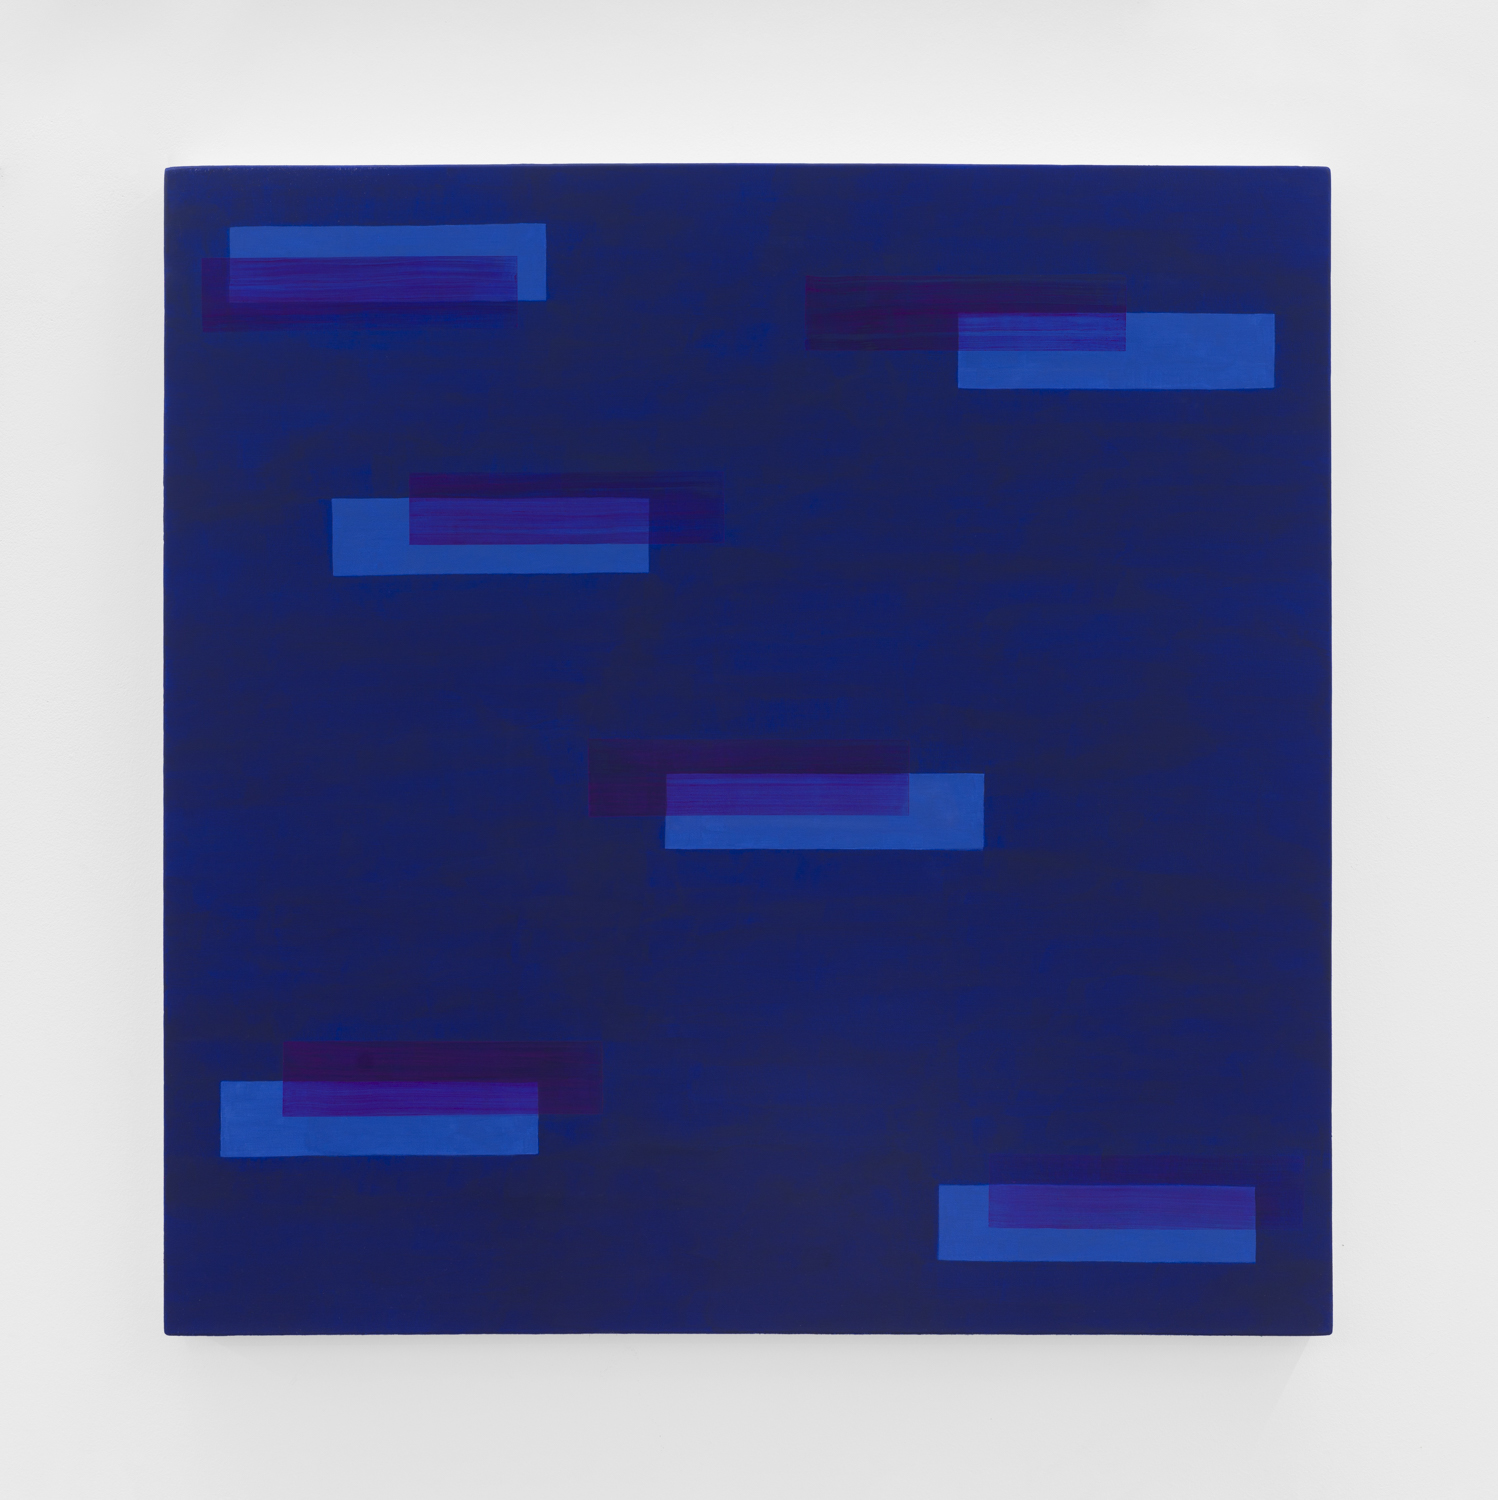 Edith Baumann  Pattern Recognition #20 , 2018 ground pigment and acrylic on canvas 33 x 33 inches